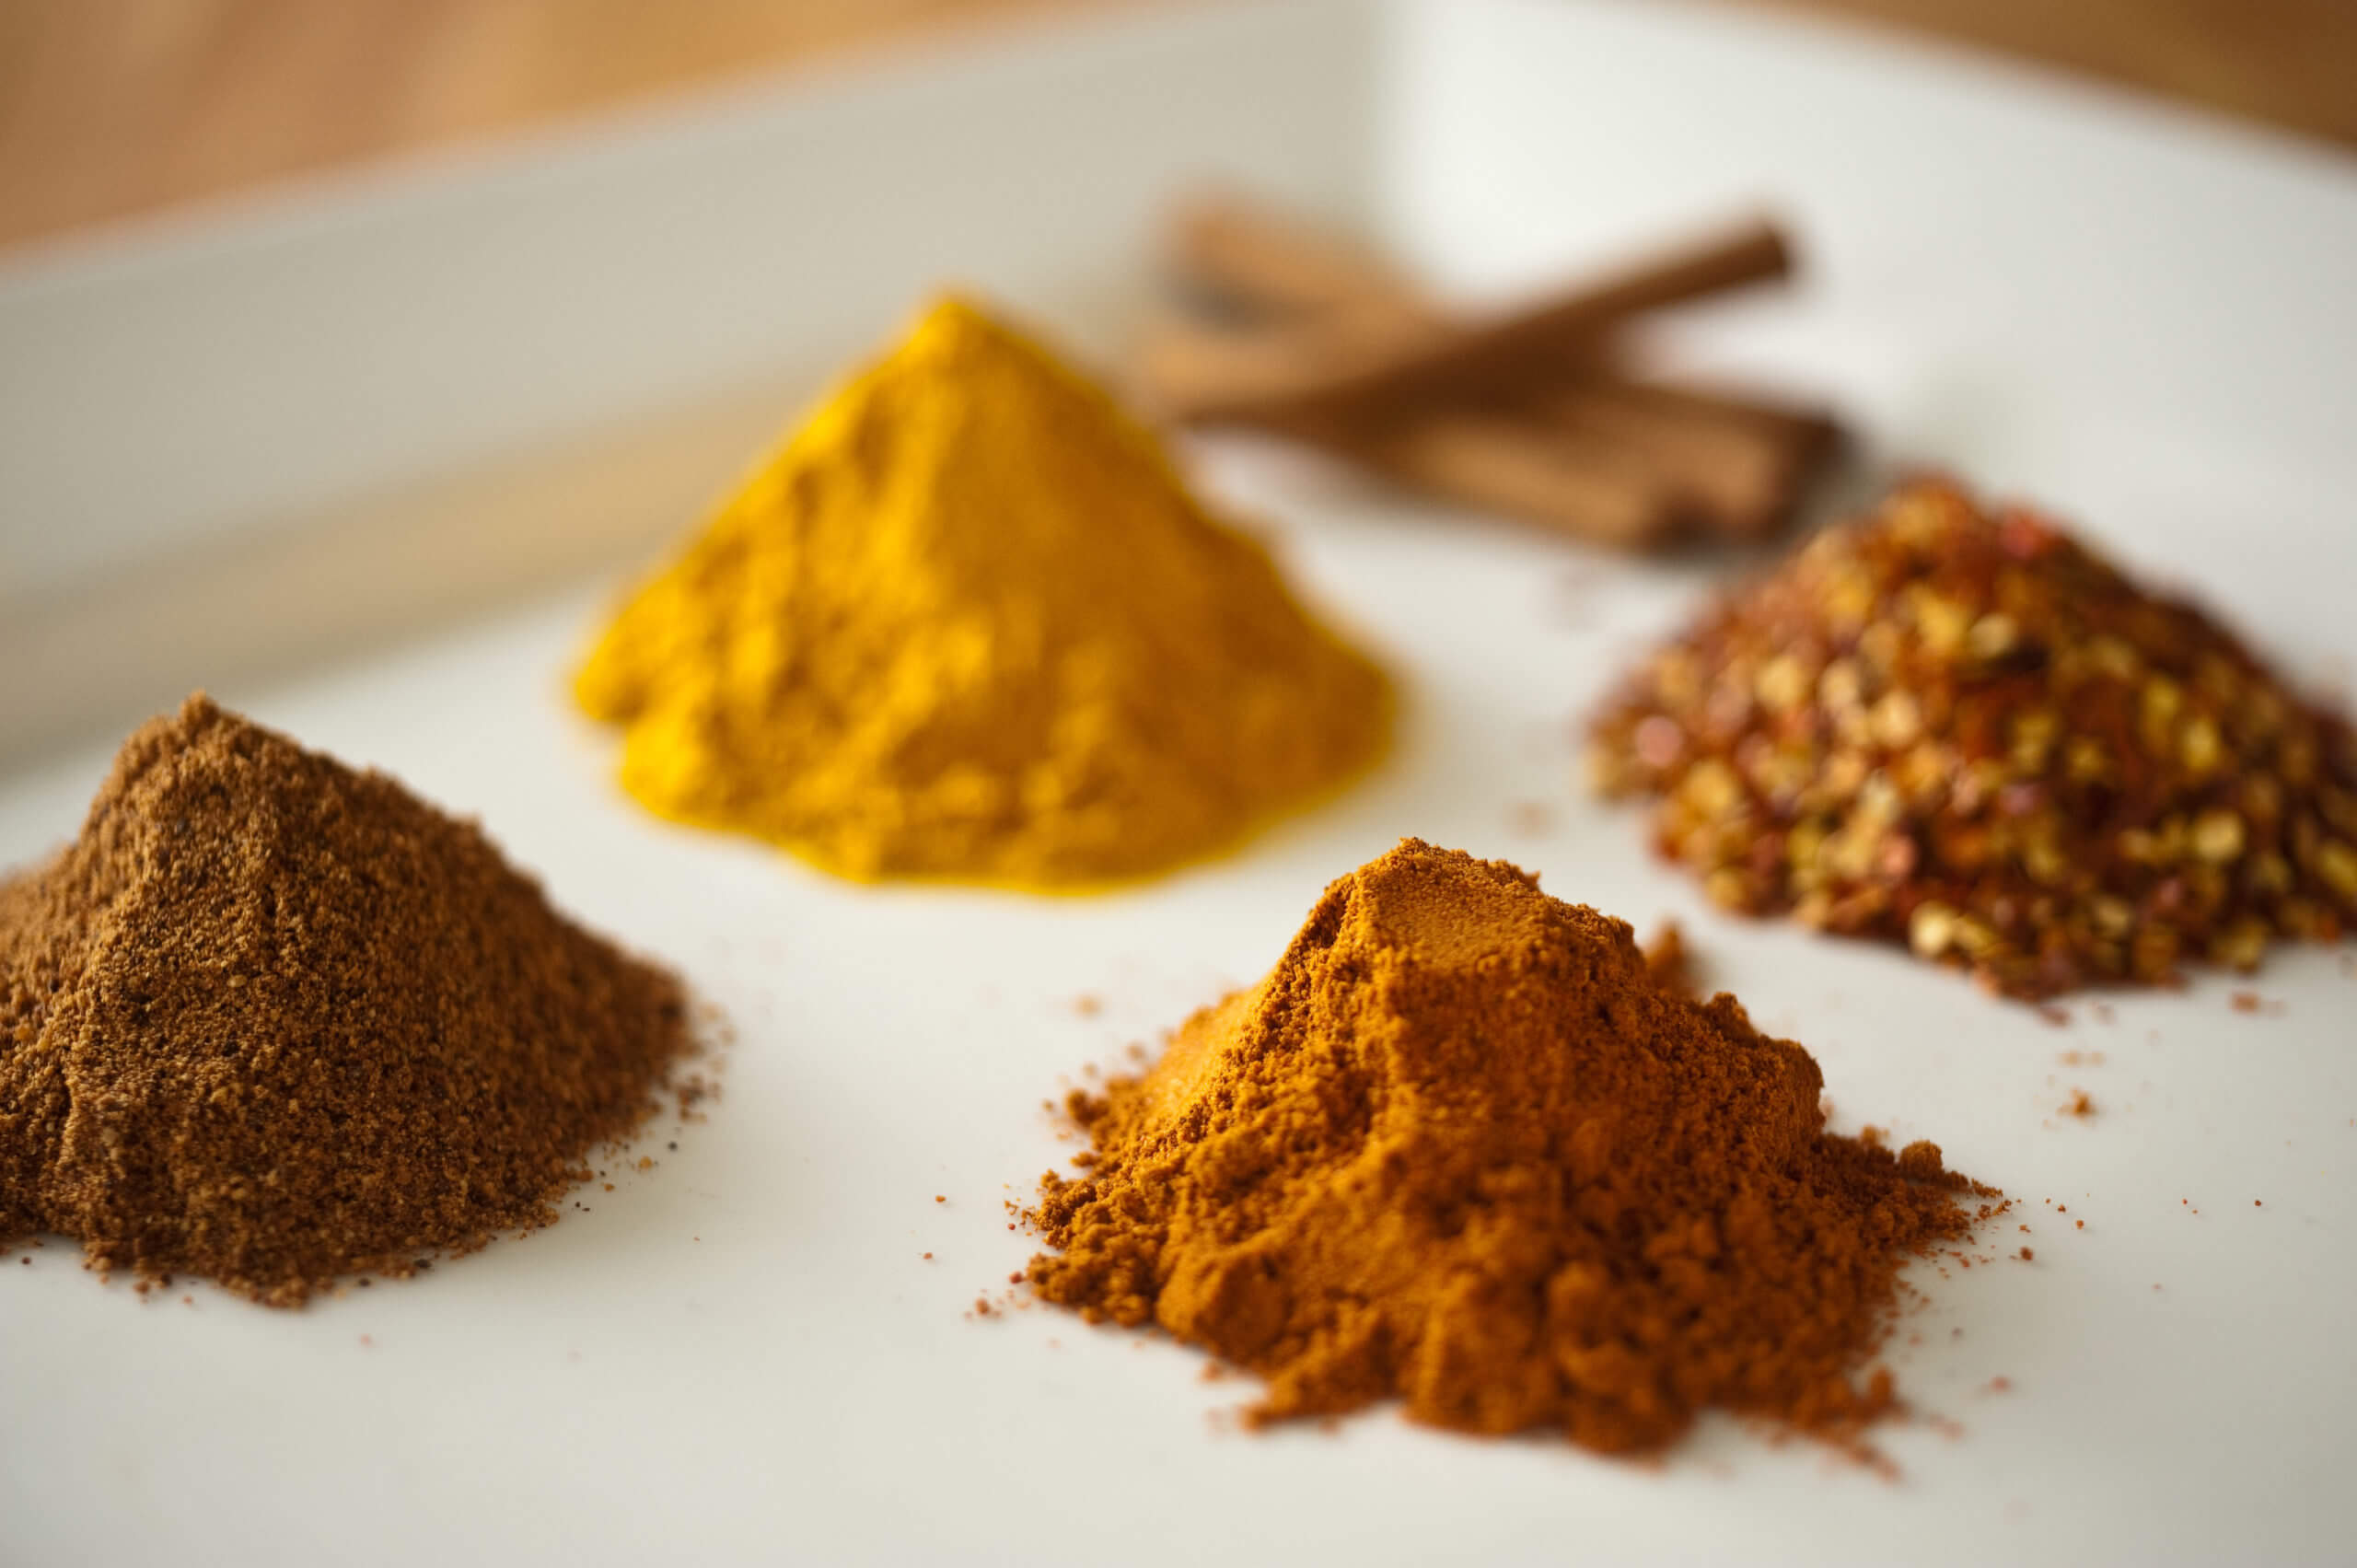 5 Spices To Use Instead of Salt